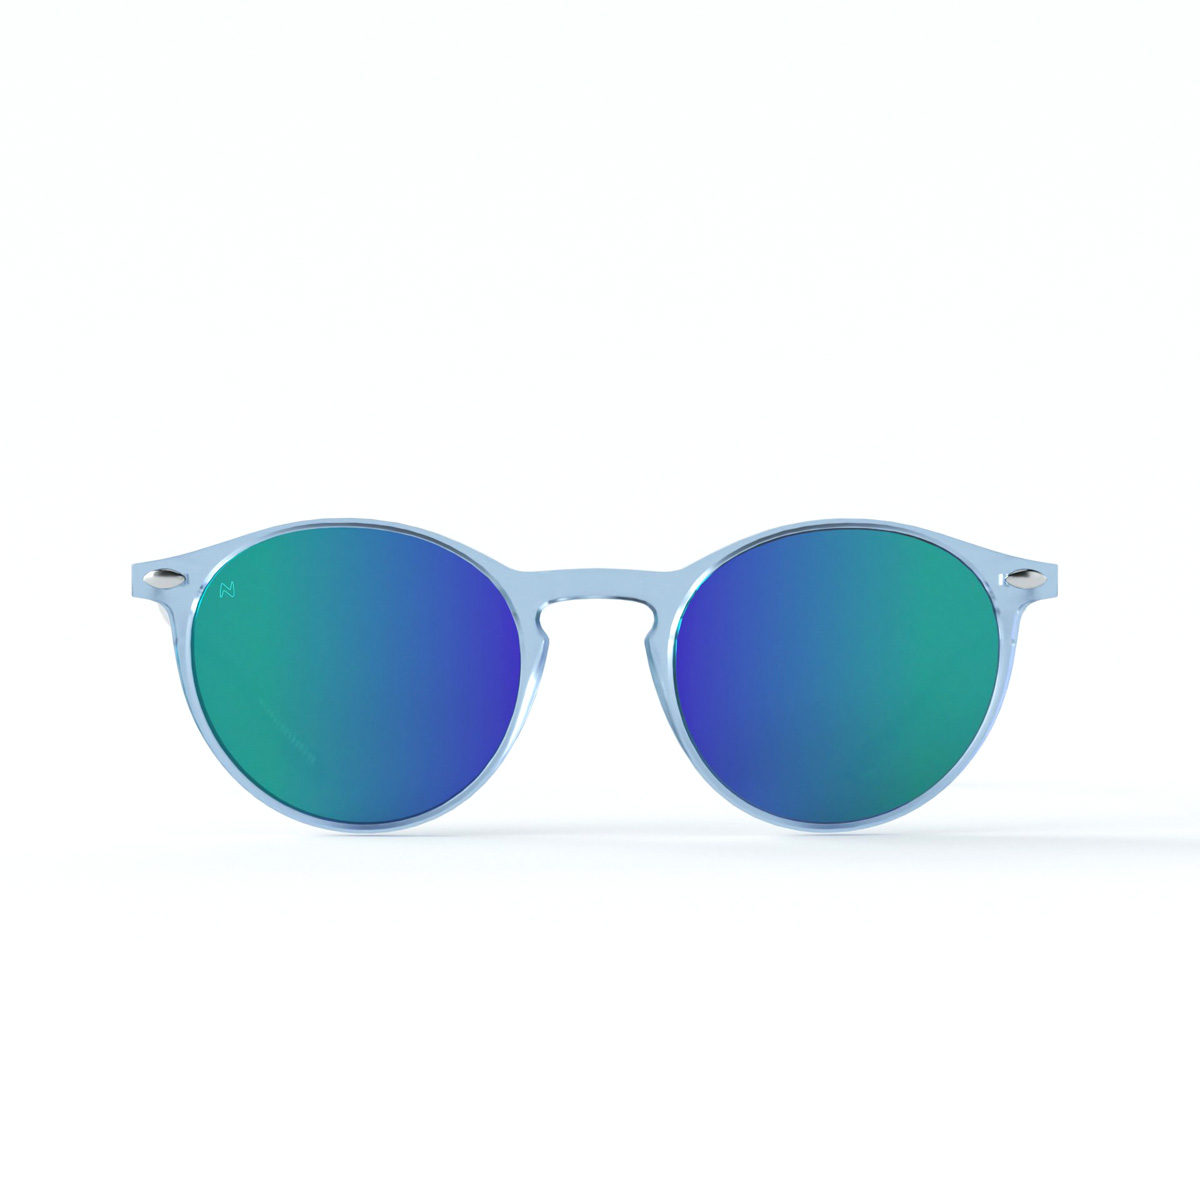 Nooz - Sunglasses - Cruz - Light Blue